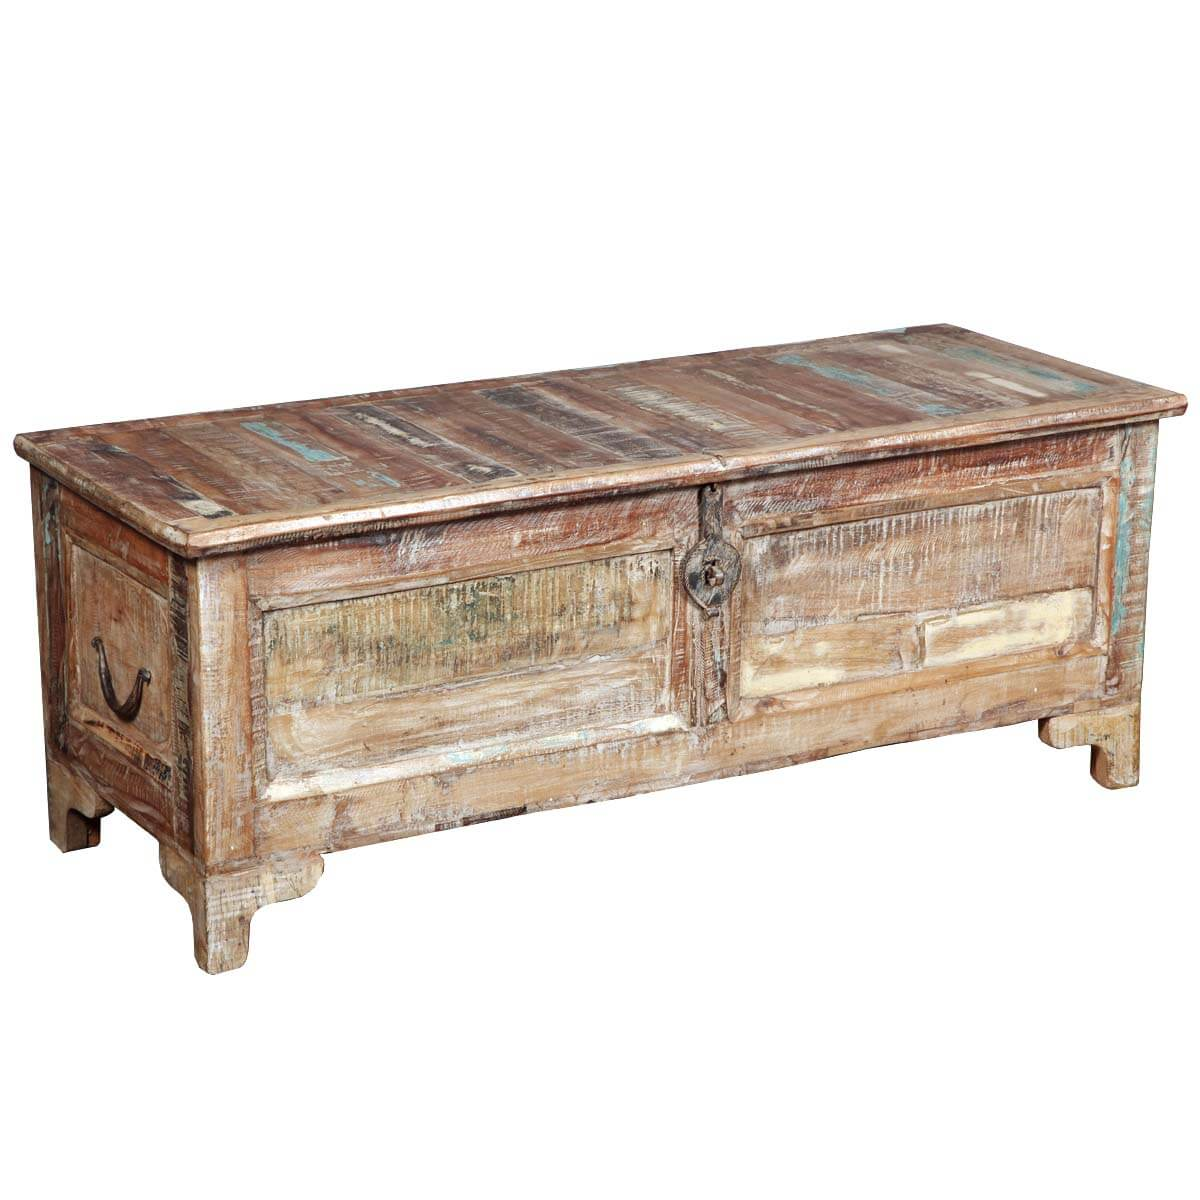 Rustic Reclaimed Wood Storage Standing Coffee Table Chest